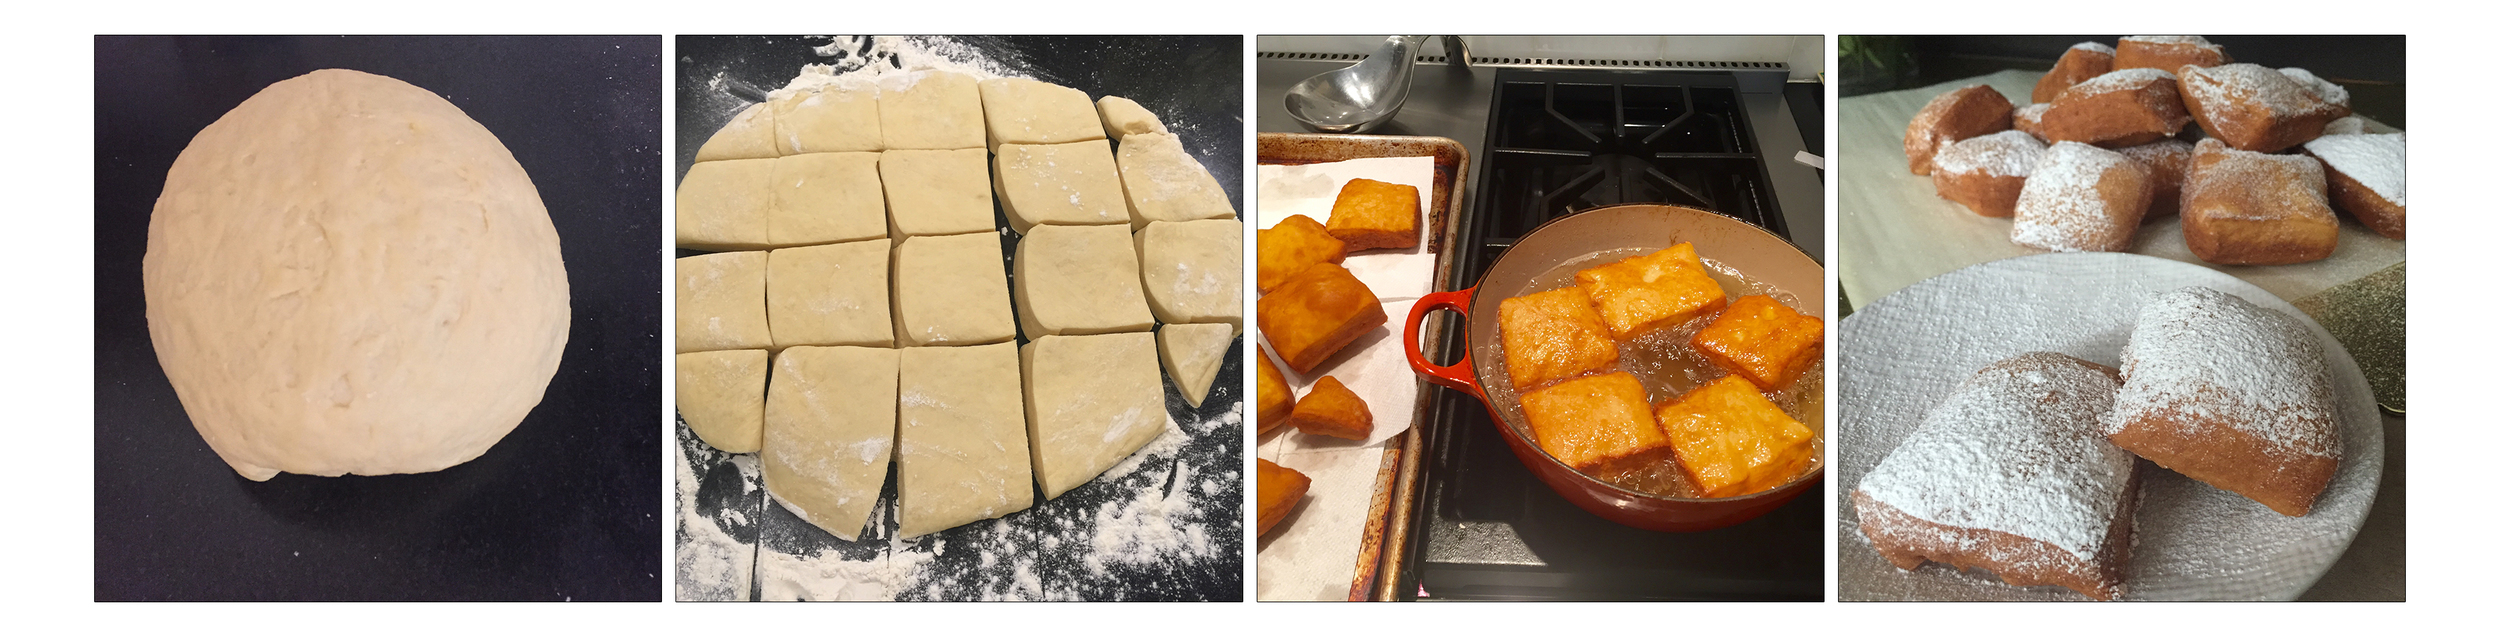 beignets, step by step.